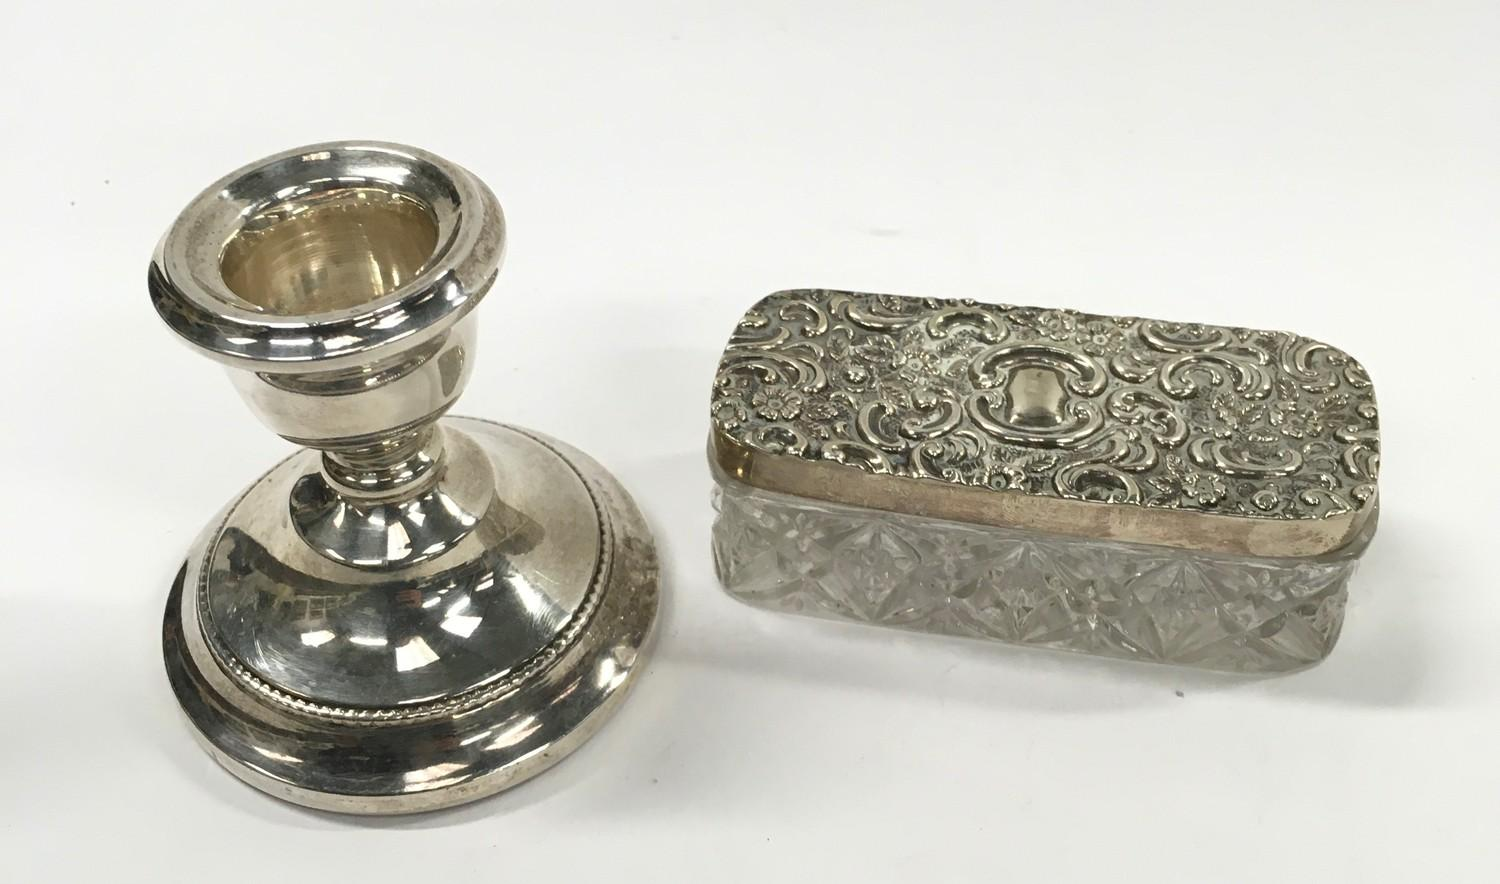 Silver Topped Ring Box - Hallmarked Birmingham 1903 and a Small Silver Candlestick.